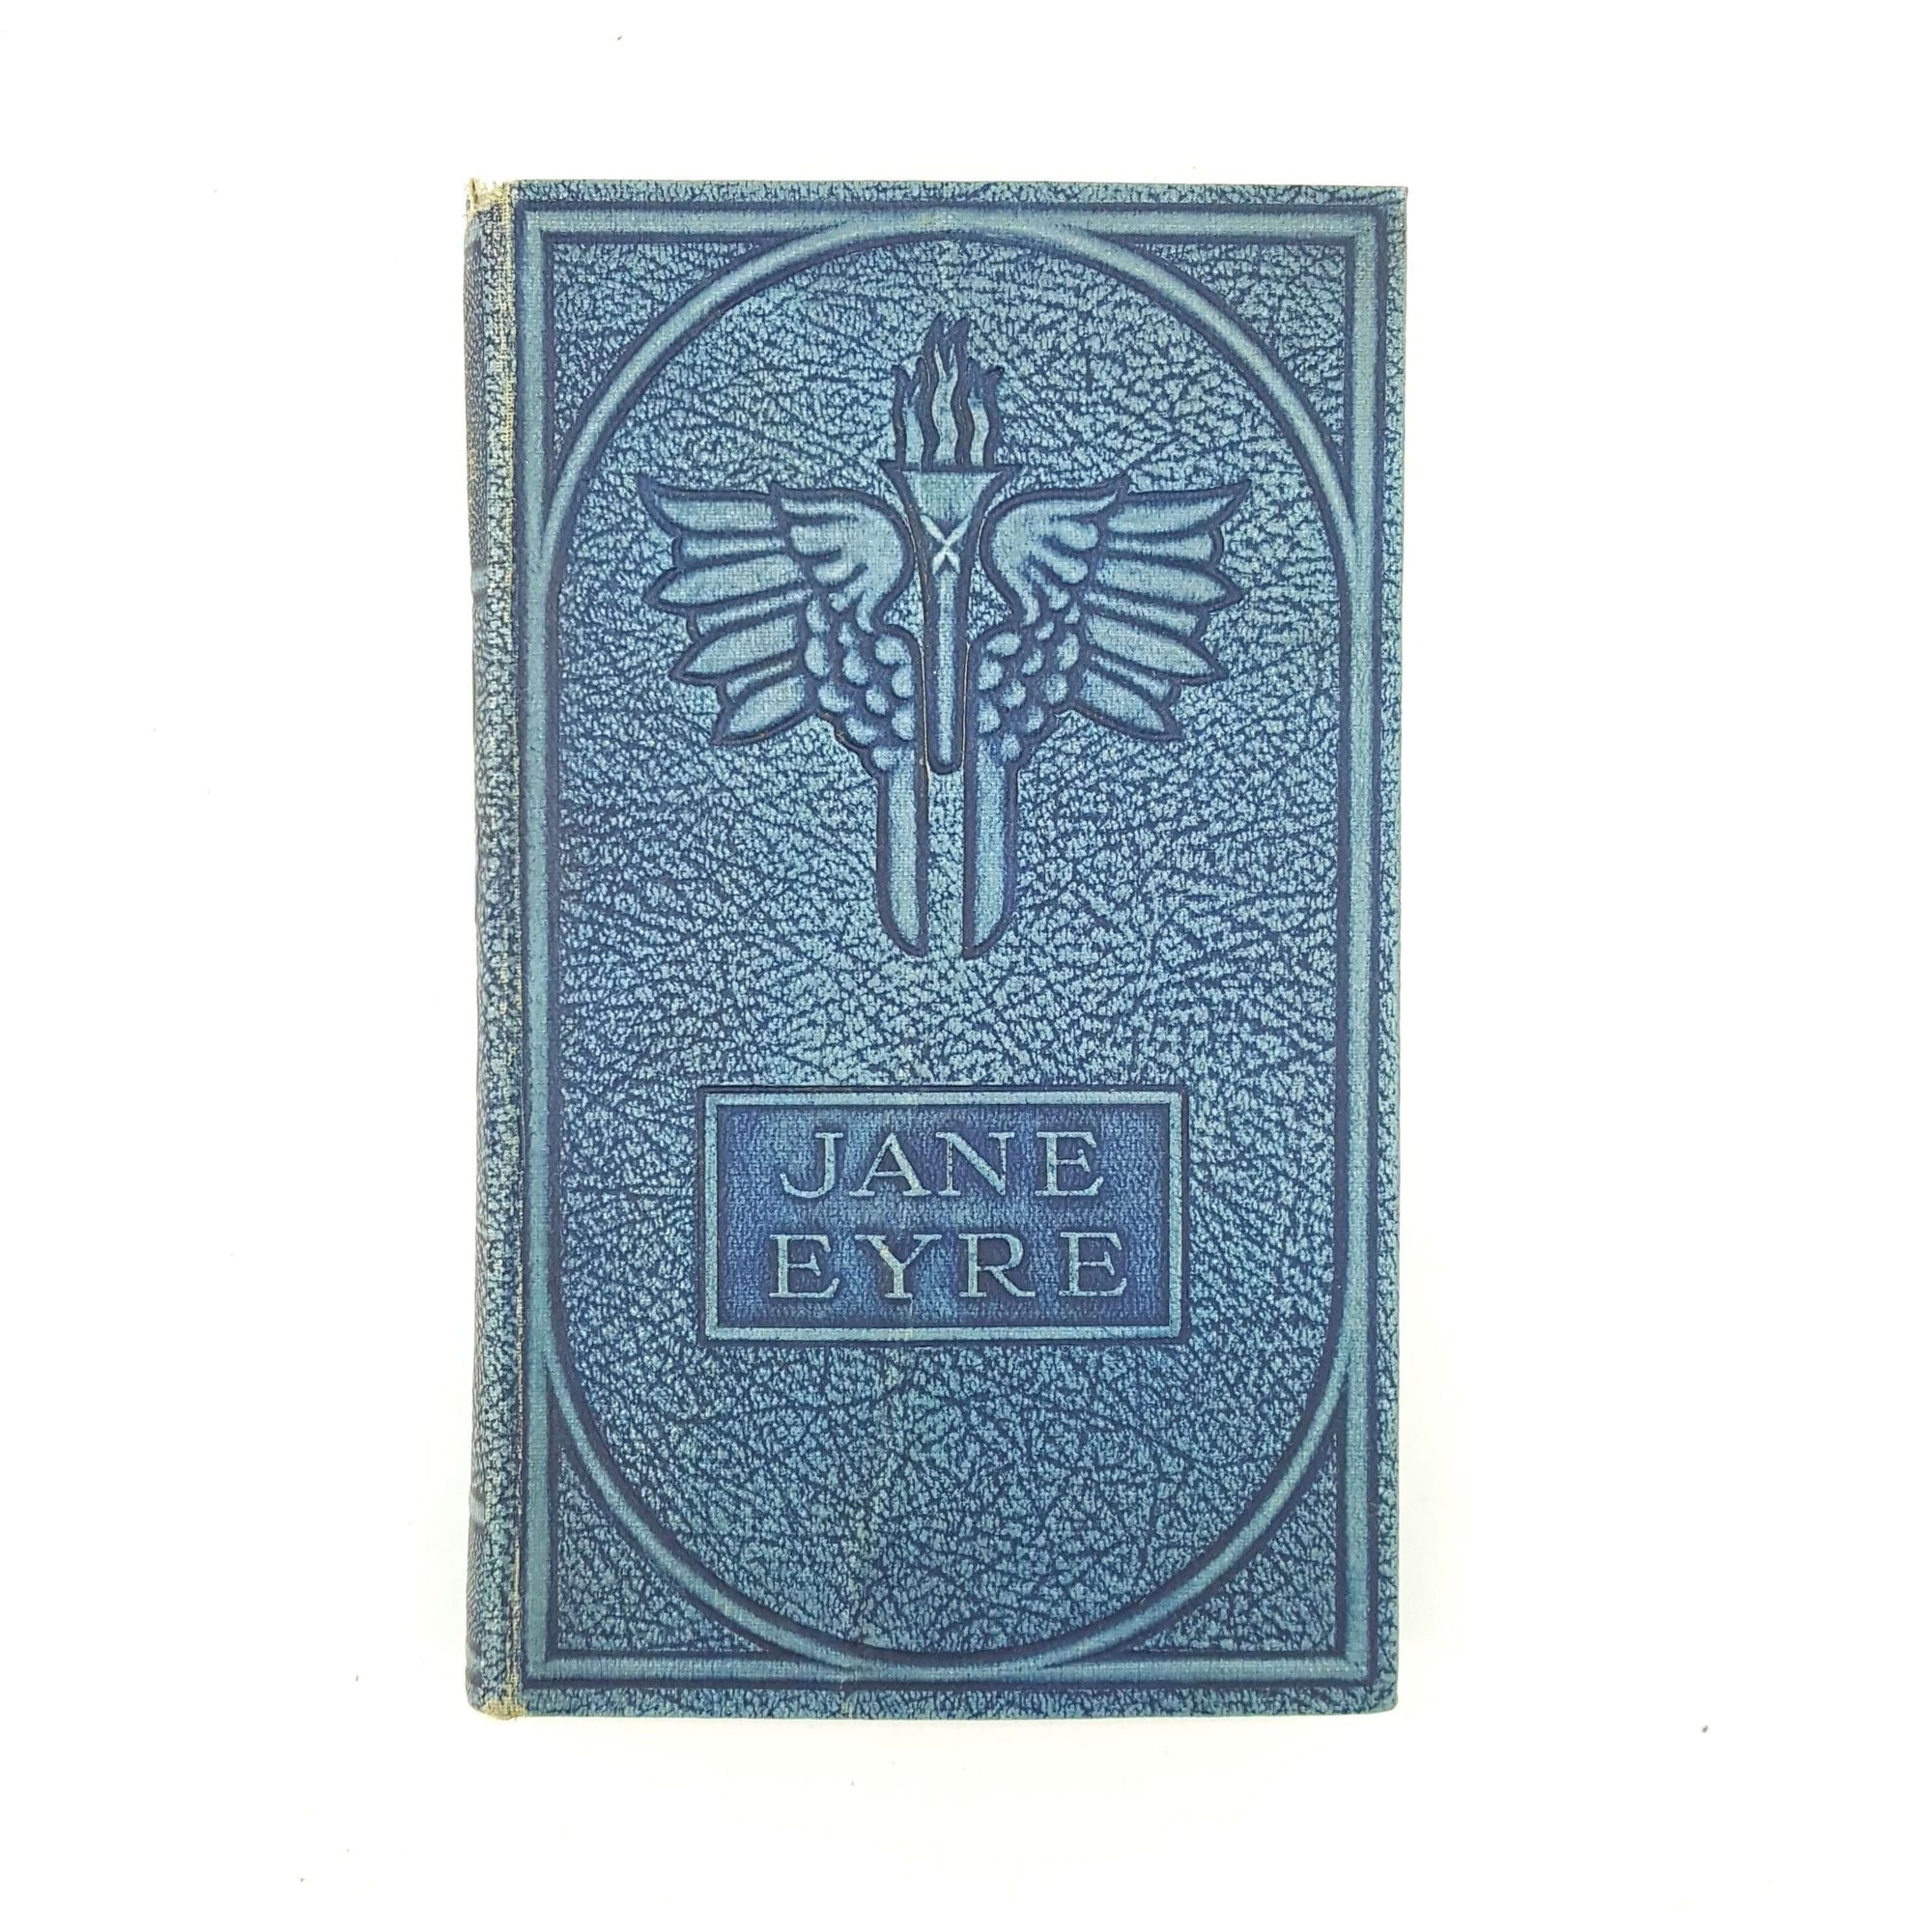 Jane Eyre by Charlotte Brontë - Oxford 1929 Country House Library